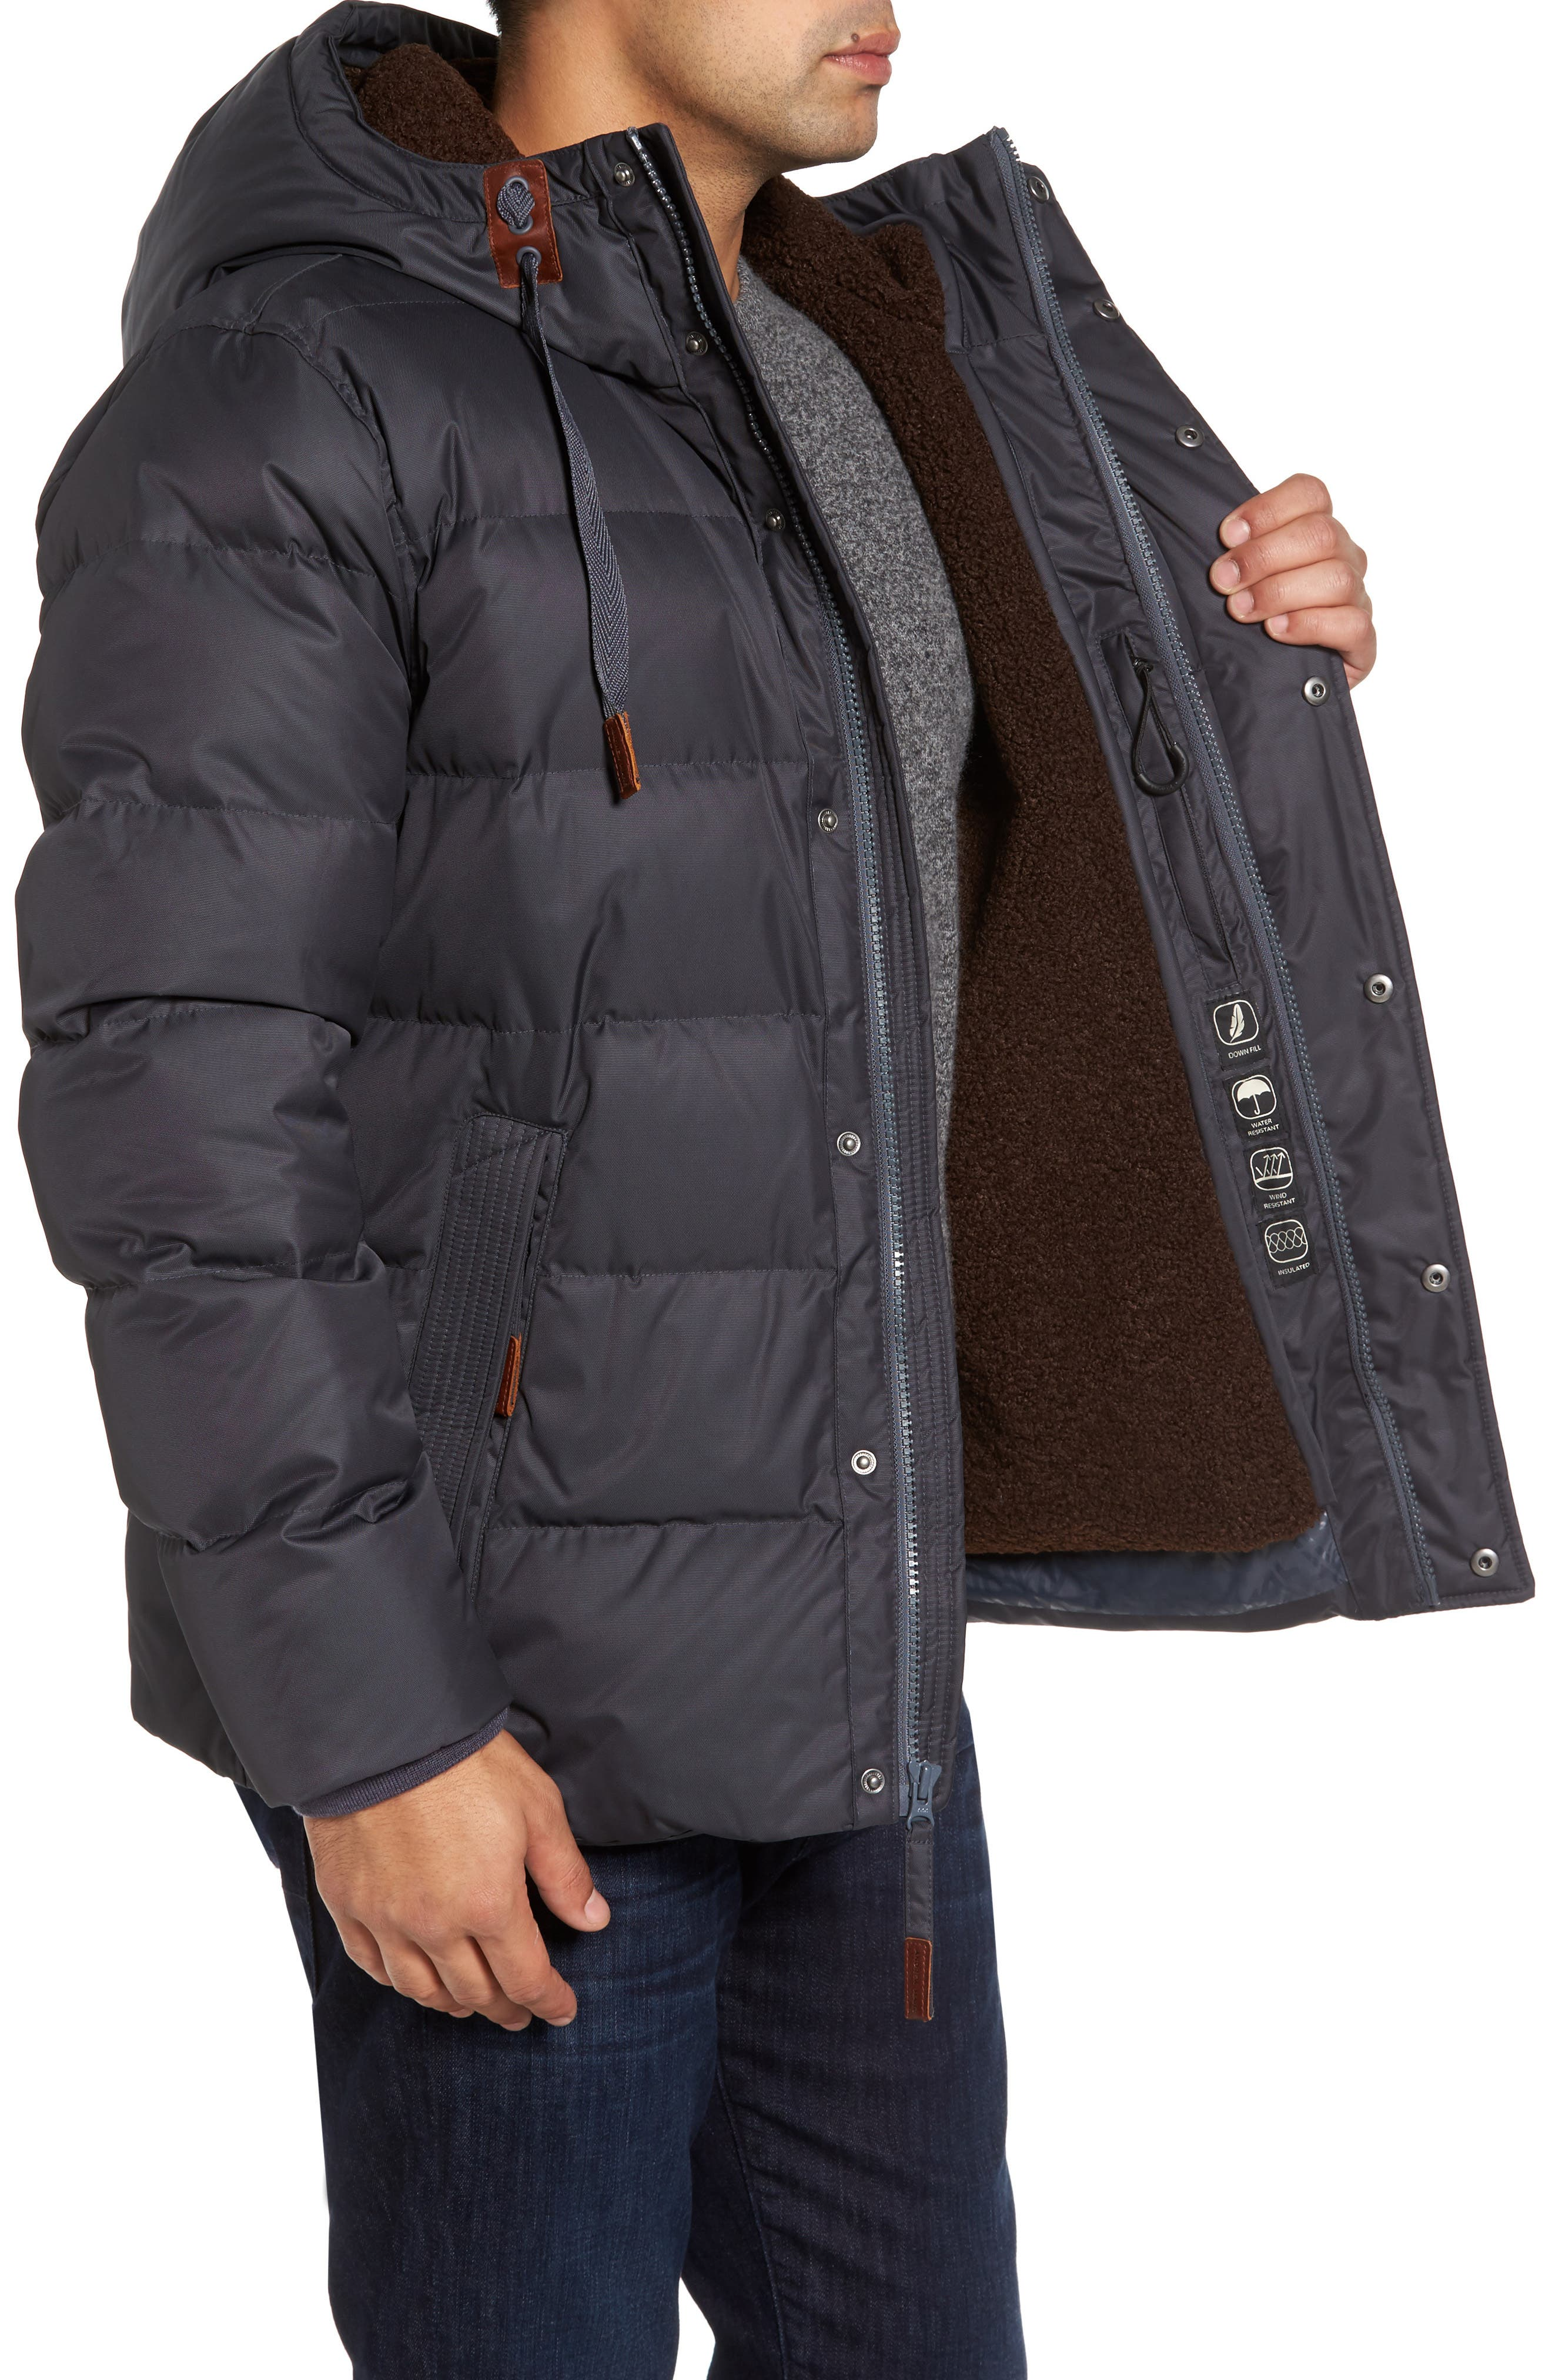 Alternate Image 3  - Andrew Marc Groton Slim Down Jacket with Faux Shearling Lining